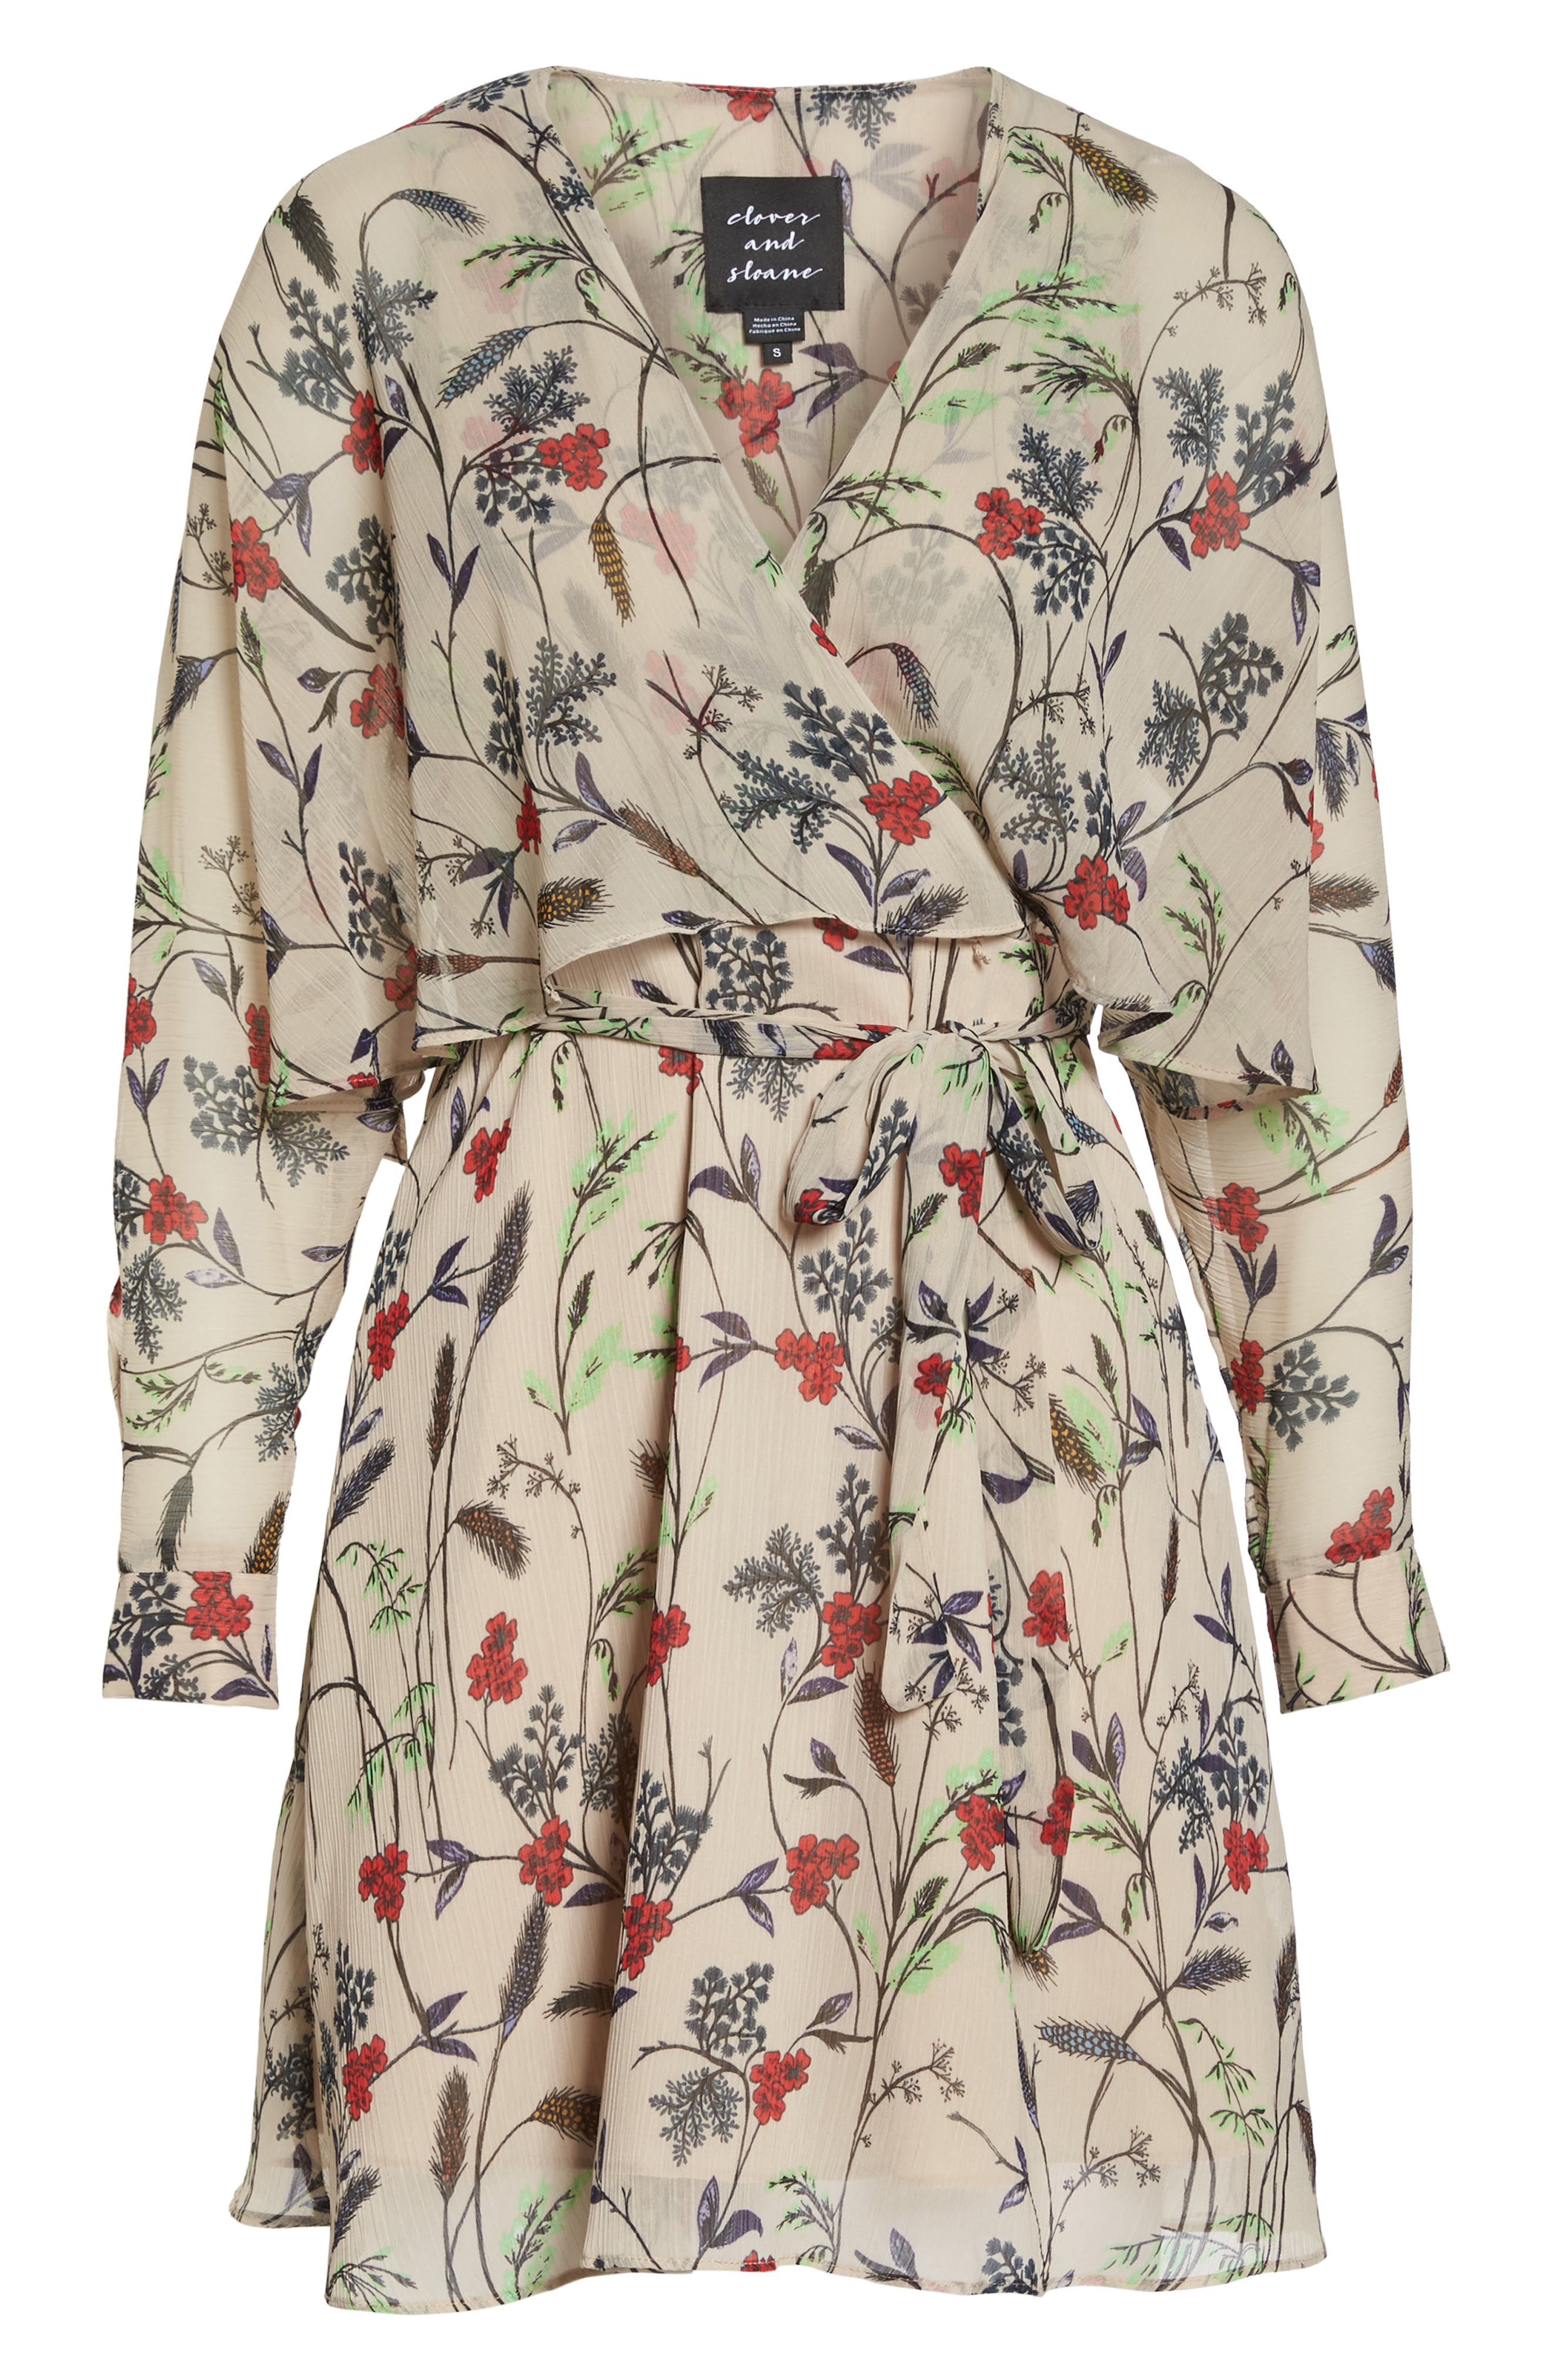 Yoryu Floral Chiffon Dress,                             Alternate thumbnail 7, color,                             Beige/ Red